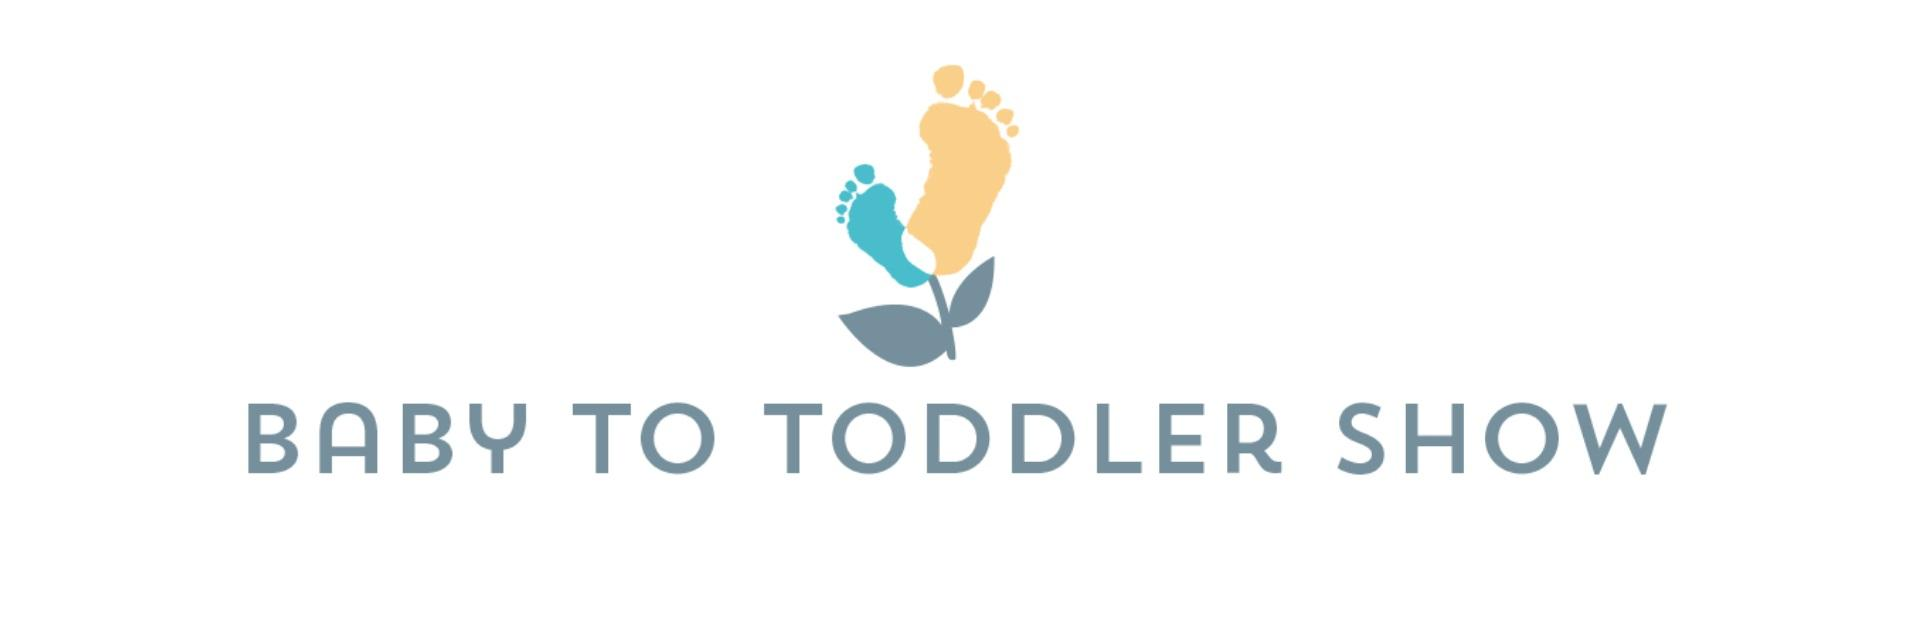 Baby to Toddler Show